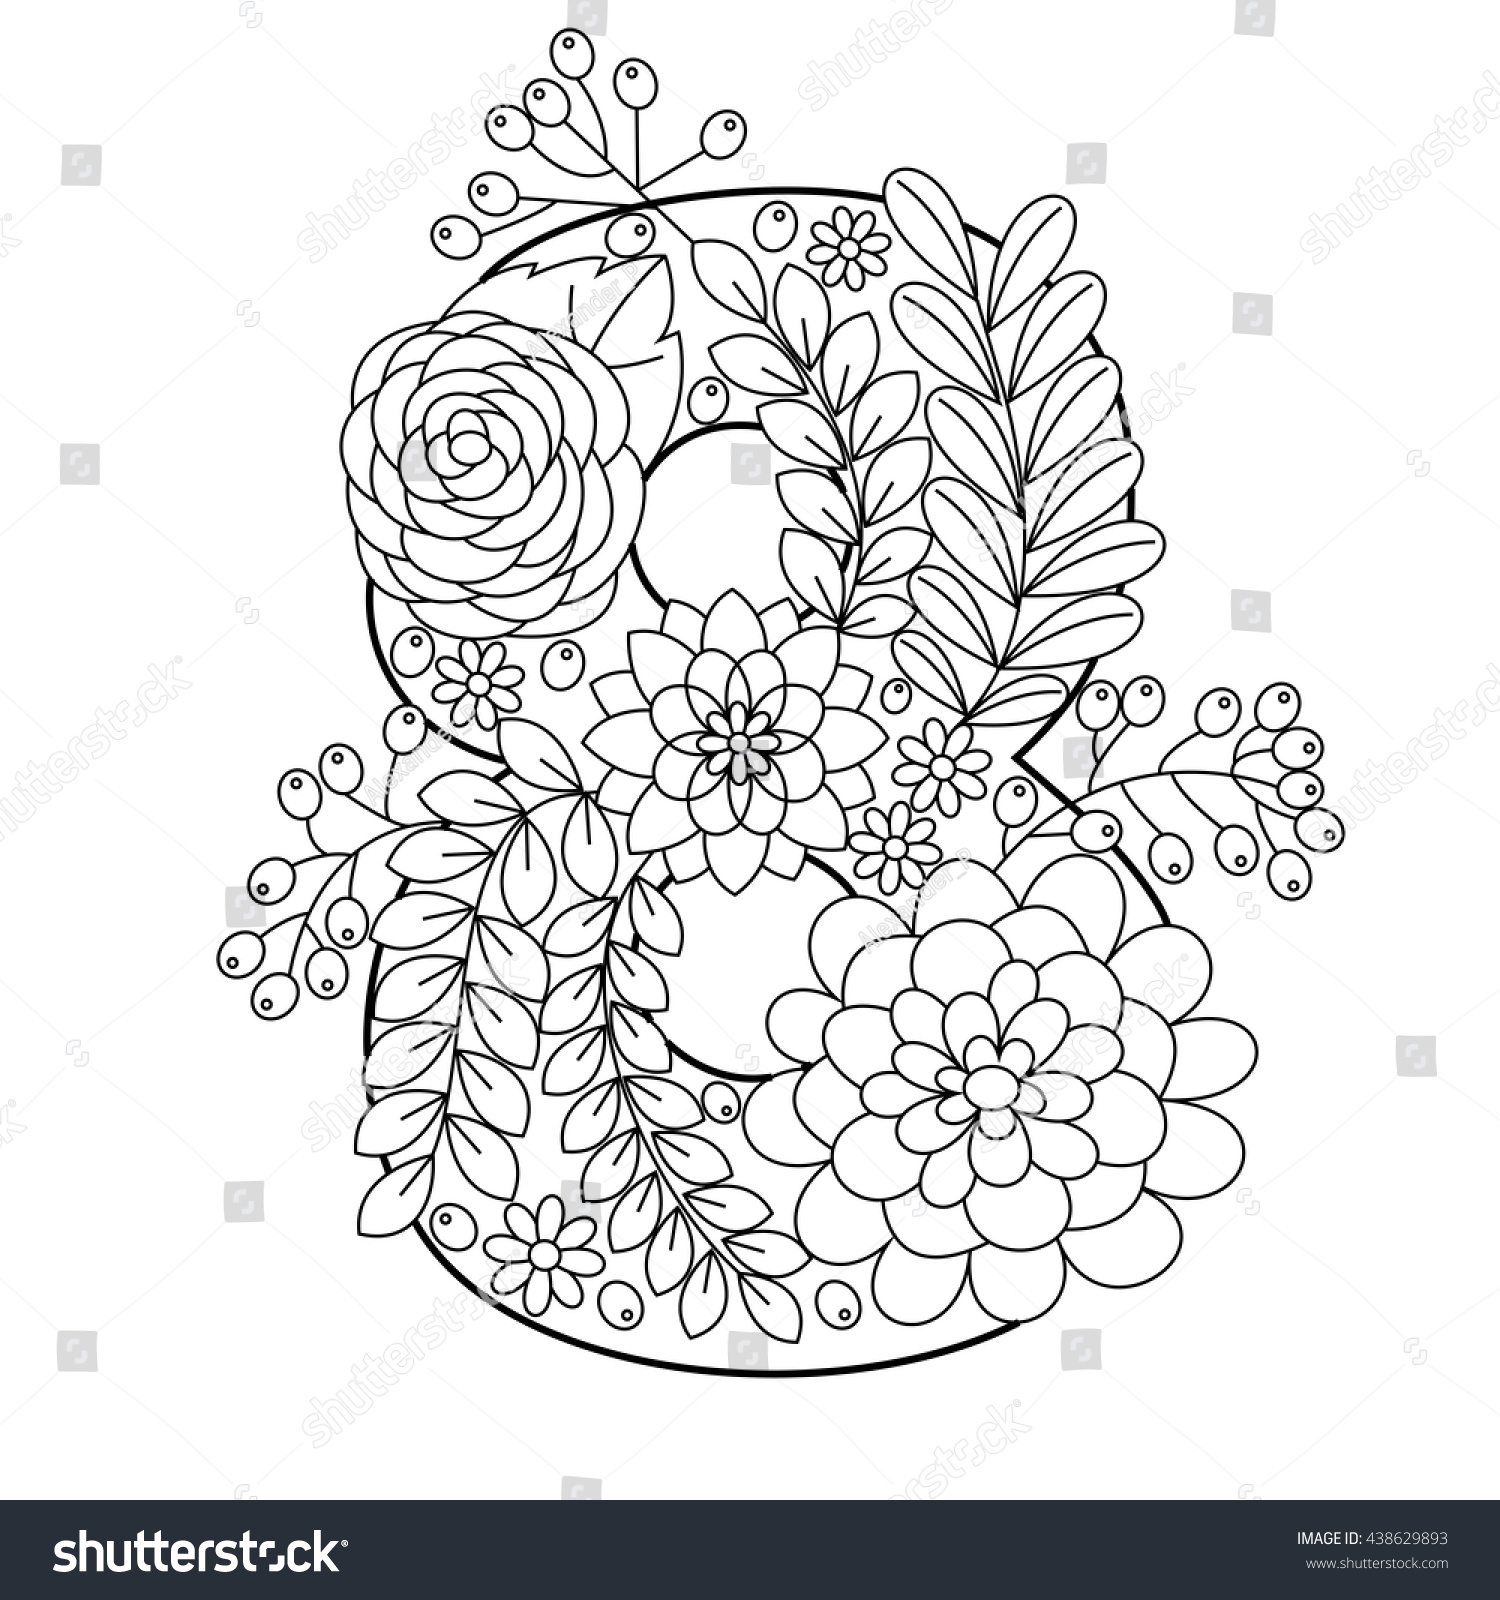 Floral Alphabet Number Coloring Book Adults Stock Vector